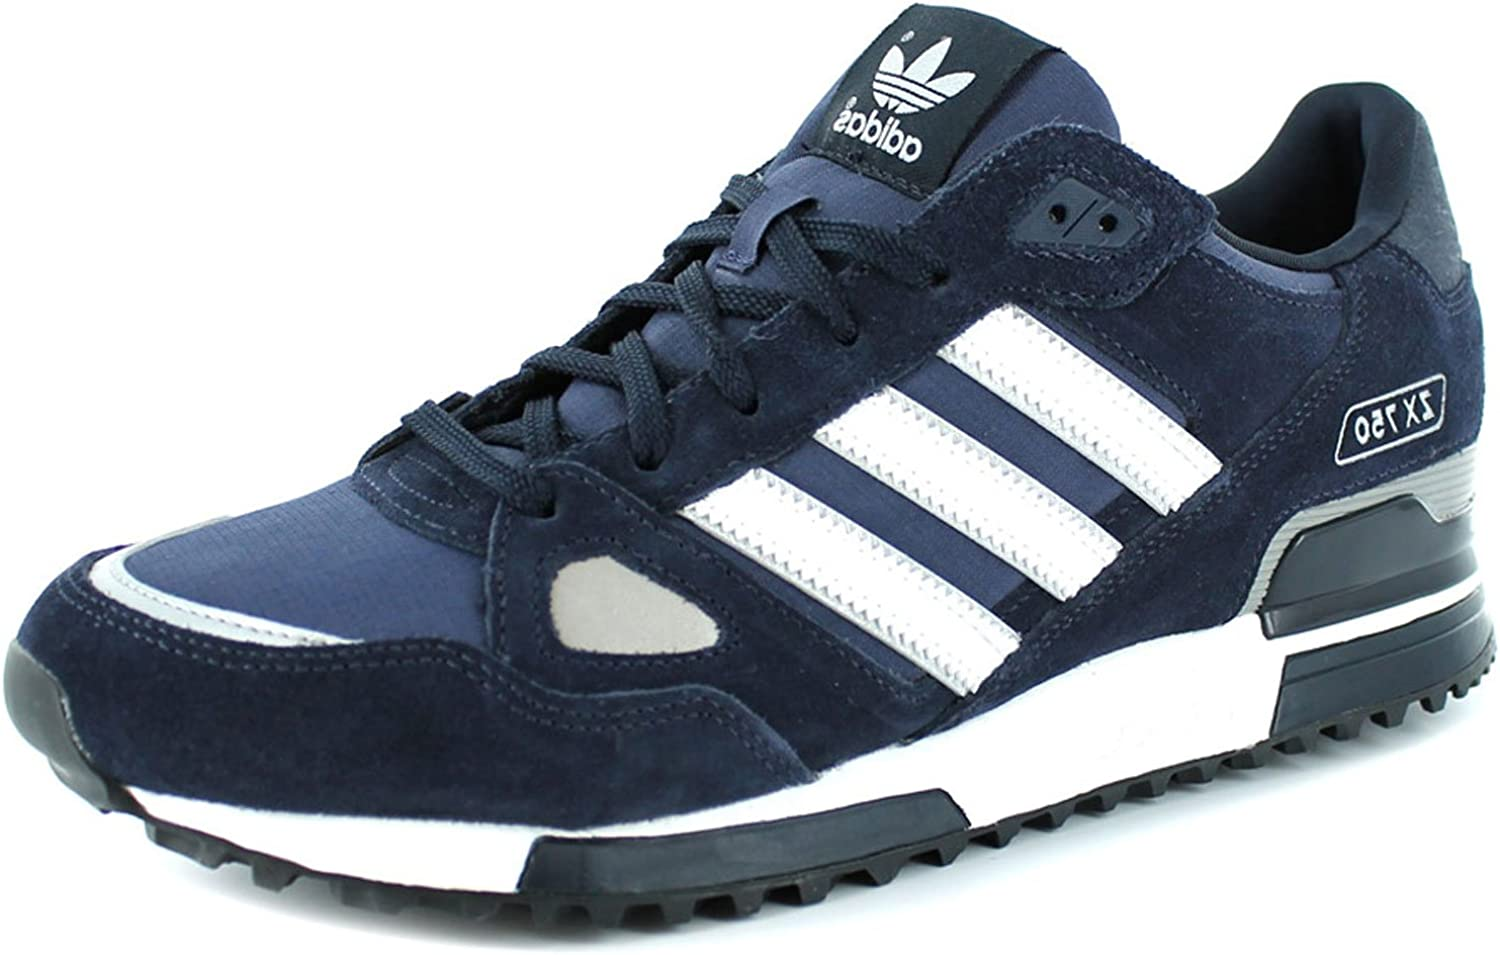 New Mens/Gents Drk/Navy/White Adidas